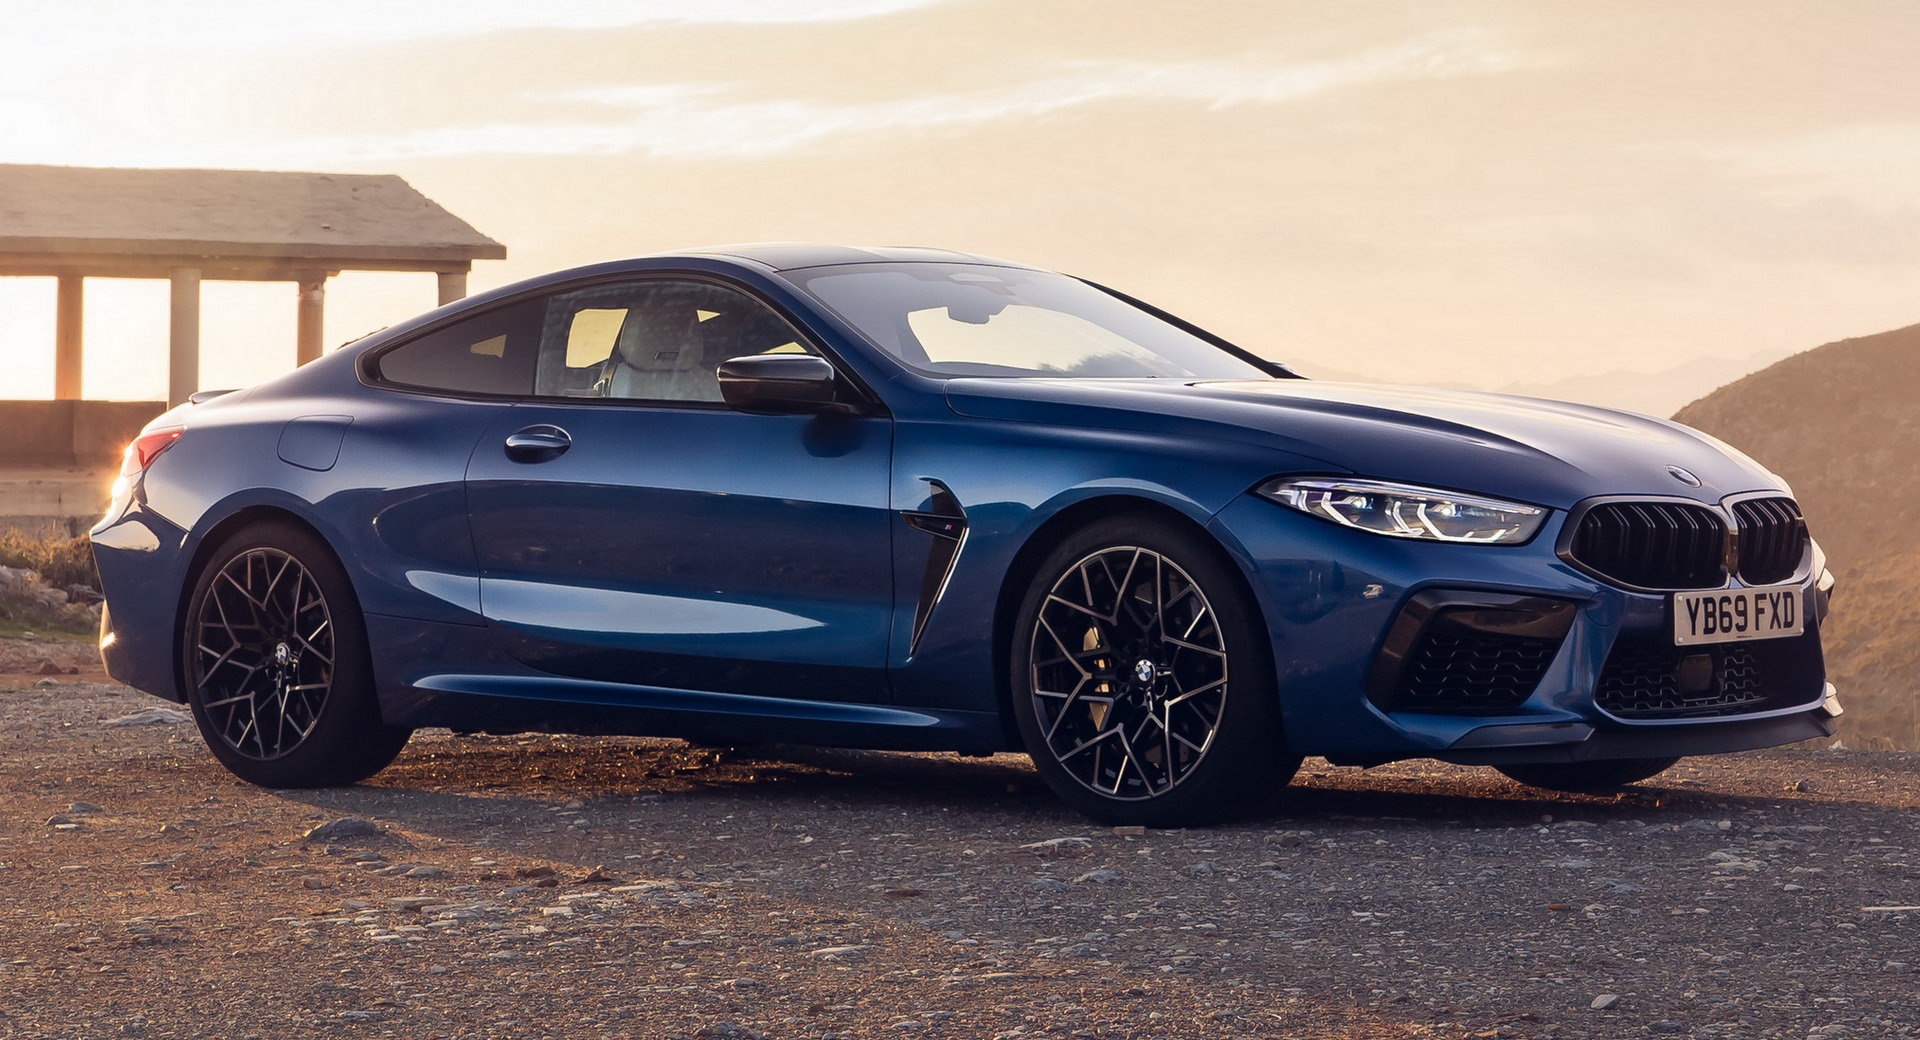 2020 Bmw M8 Competition Coupe And Convertible Arrive In The Uk Starting From 123 435 Carscoops